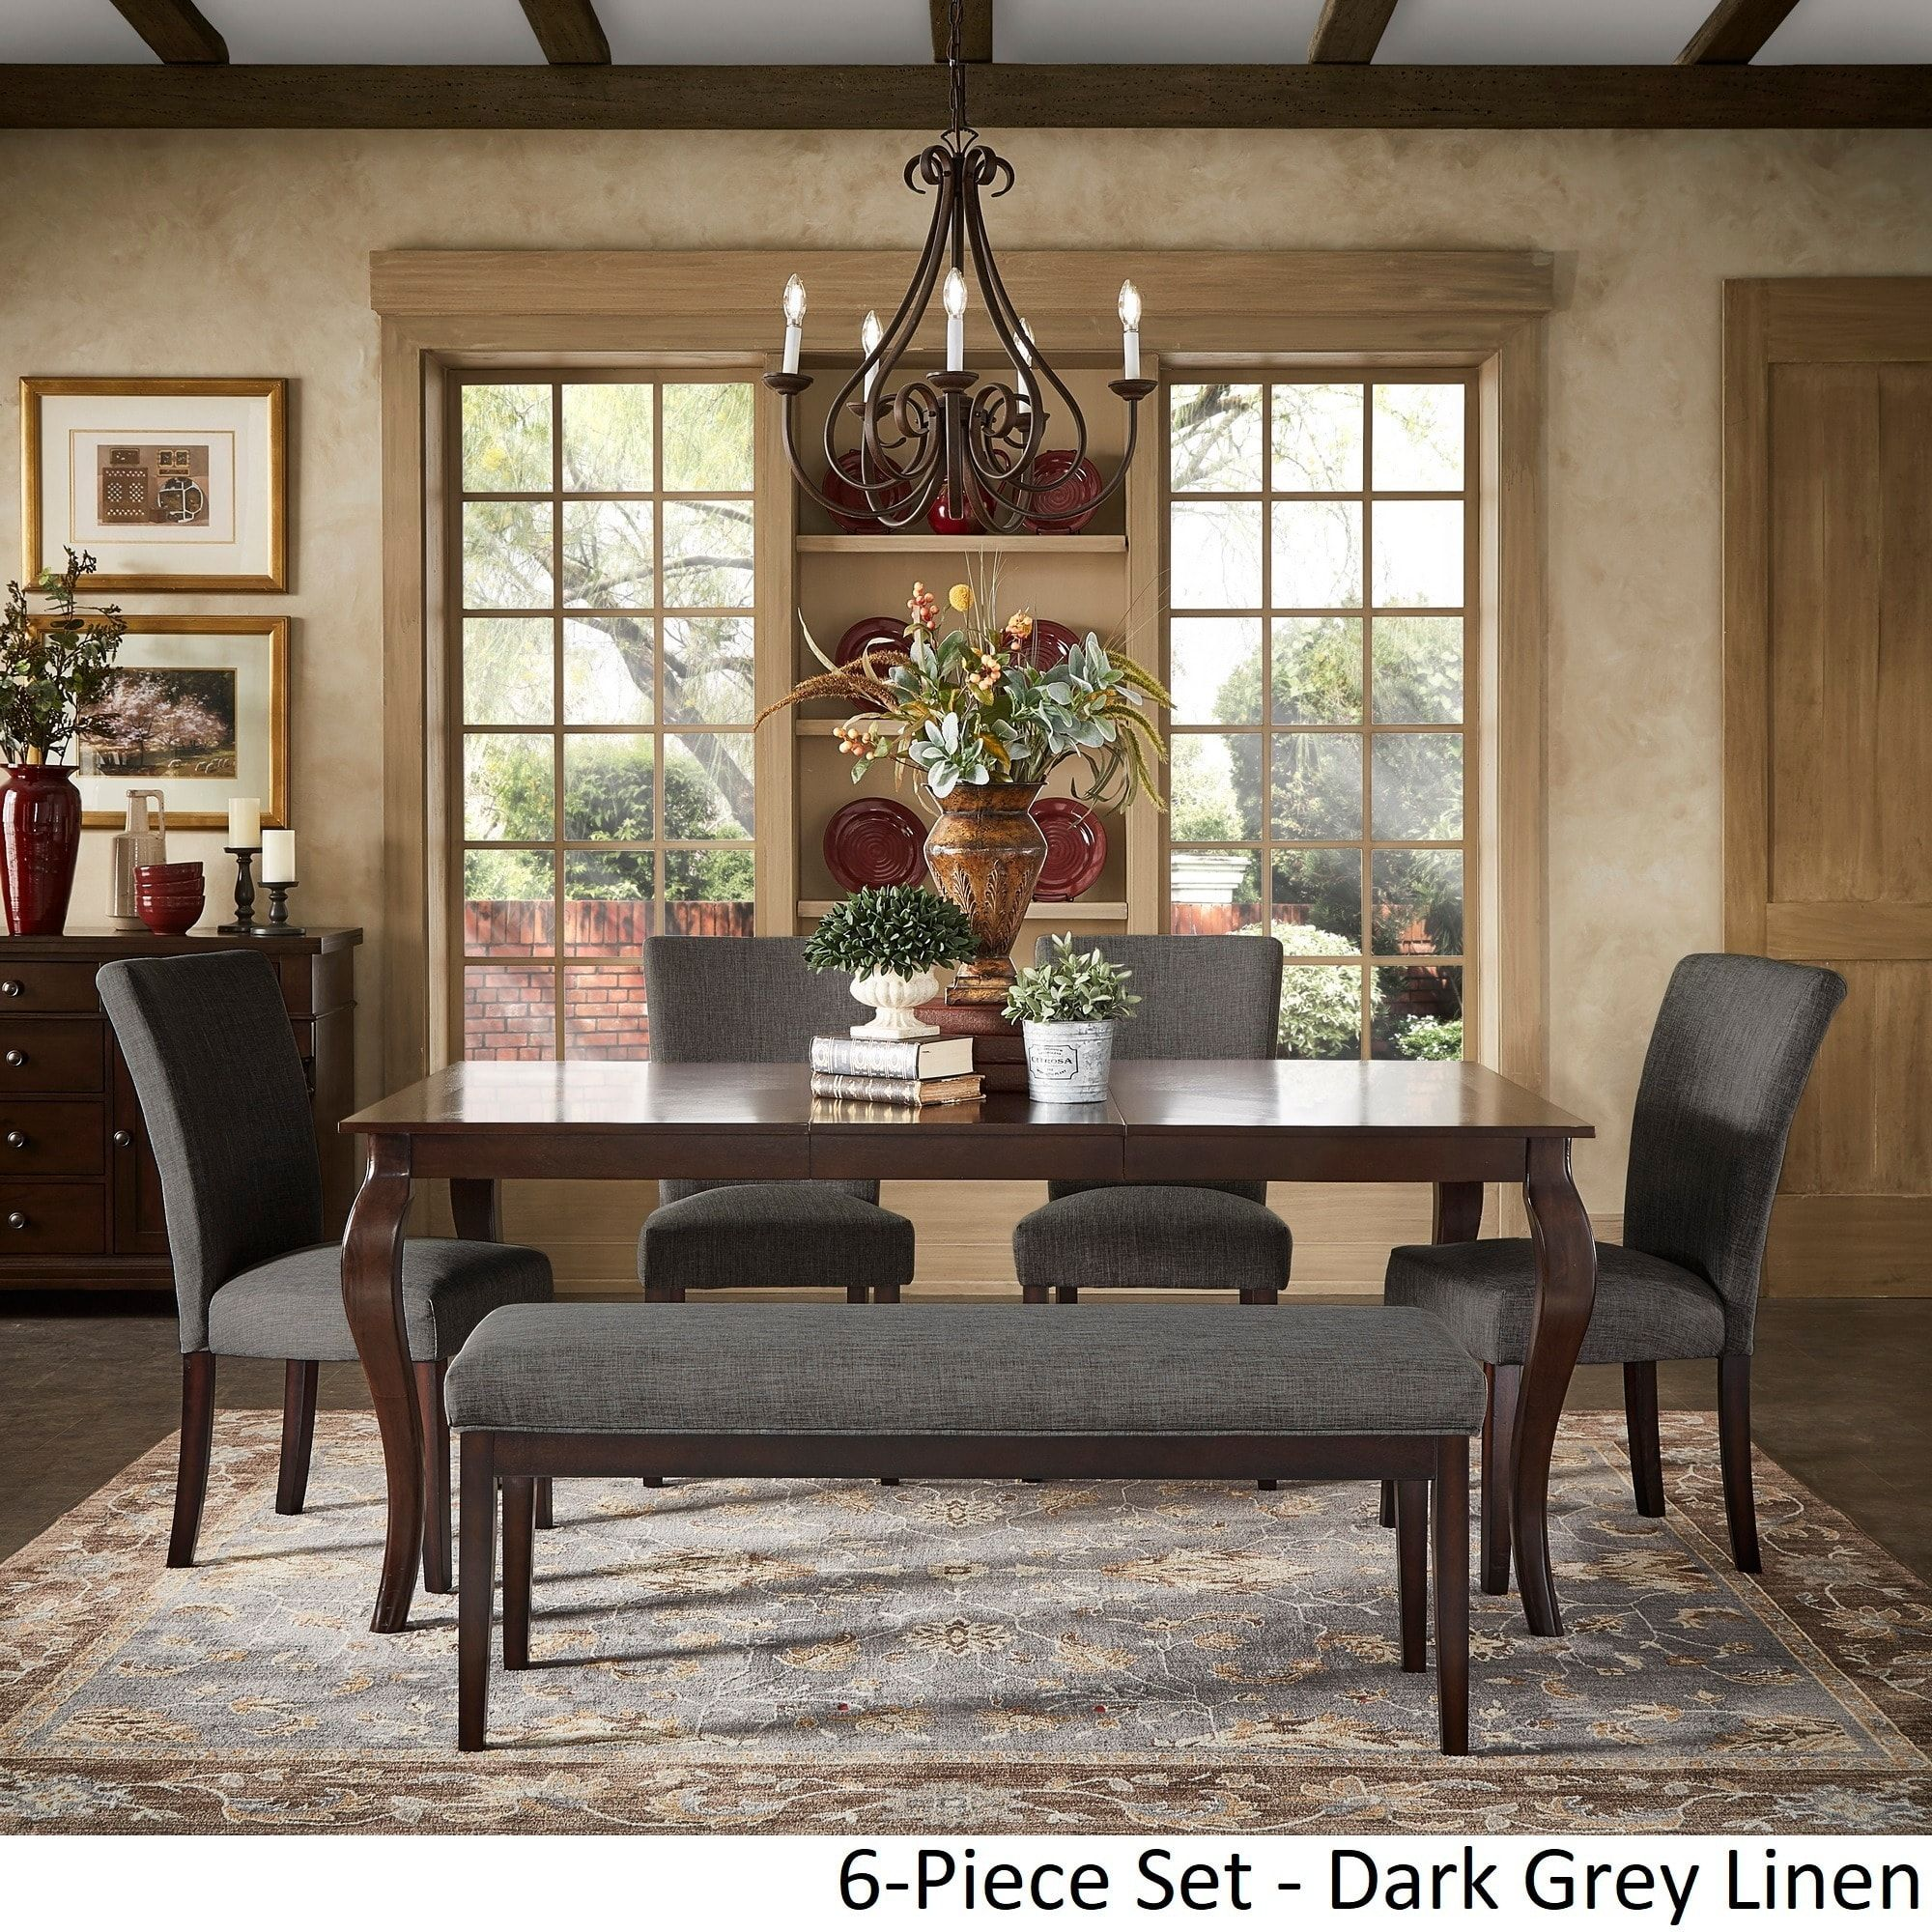 Pranzo rectangular 72 inch extending dining table and set with cabriole legs by inspire q classic 6pc set dark grey linen w 4 chairs 1 bench